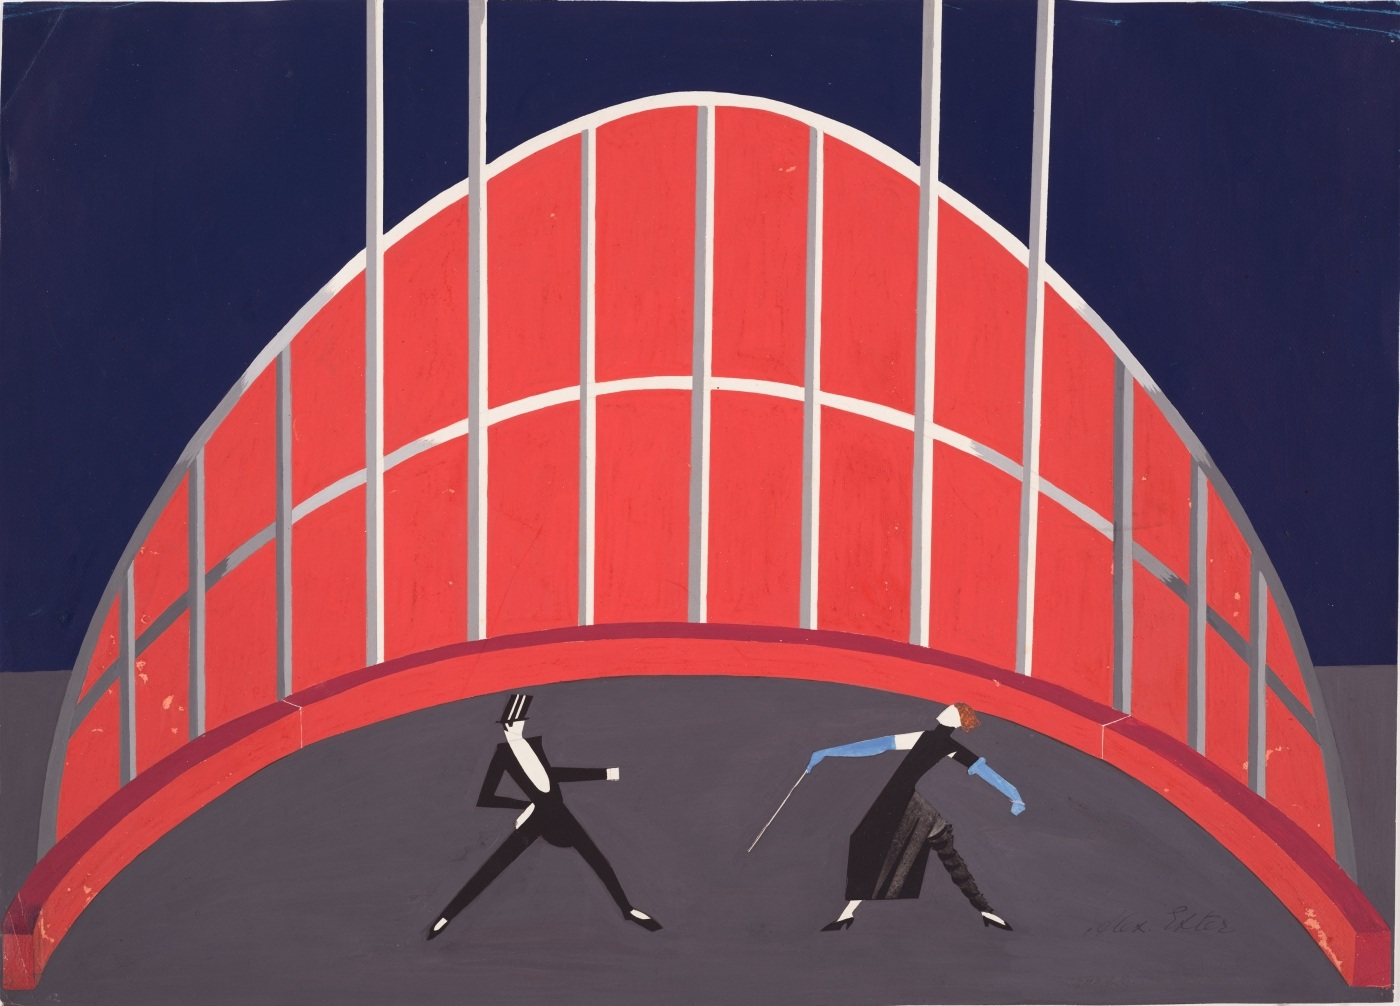 Le Cirque : ballet set design